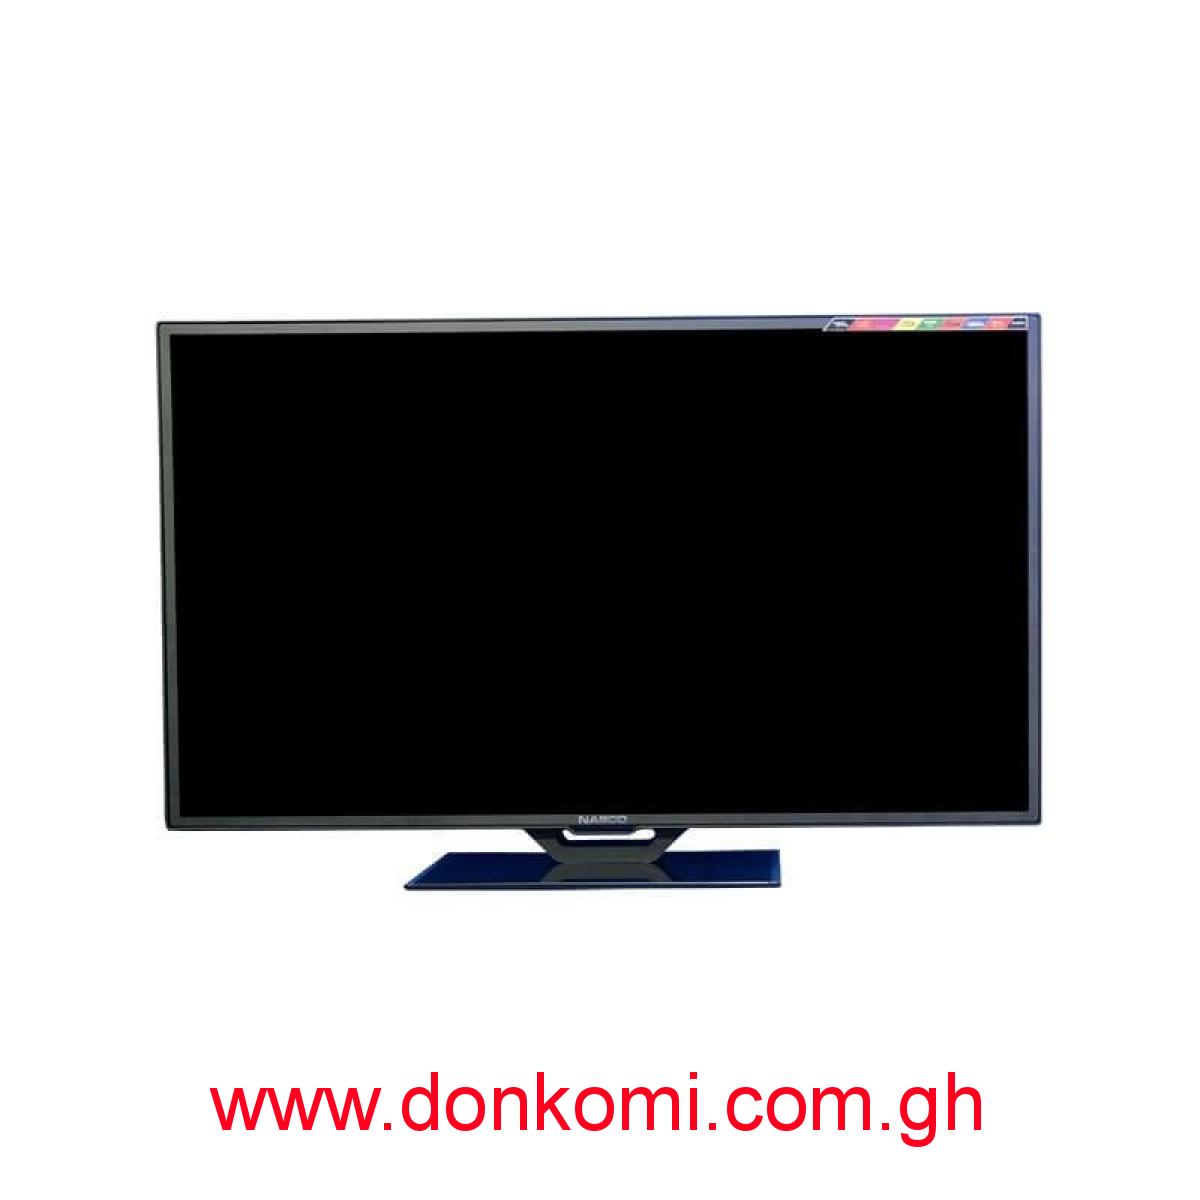 40 INCH NASCO LED TV (LED40C9A)